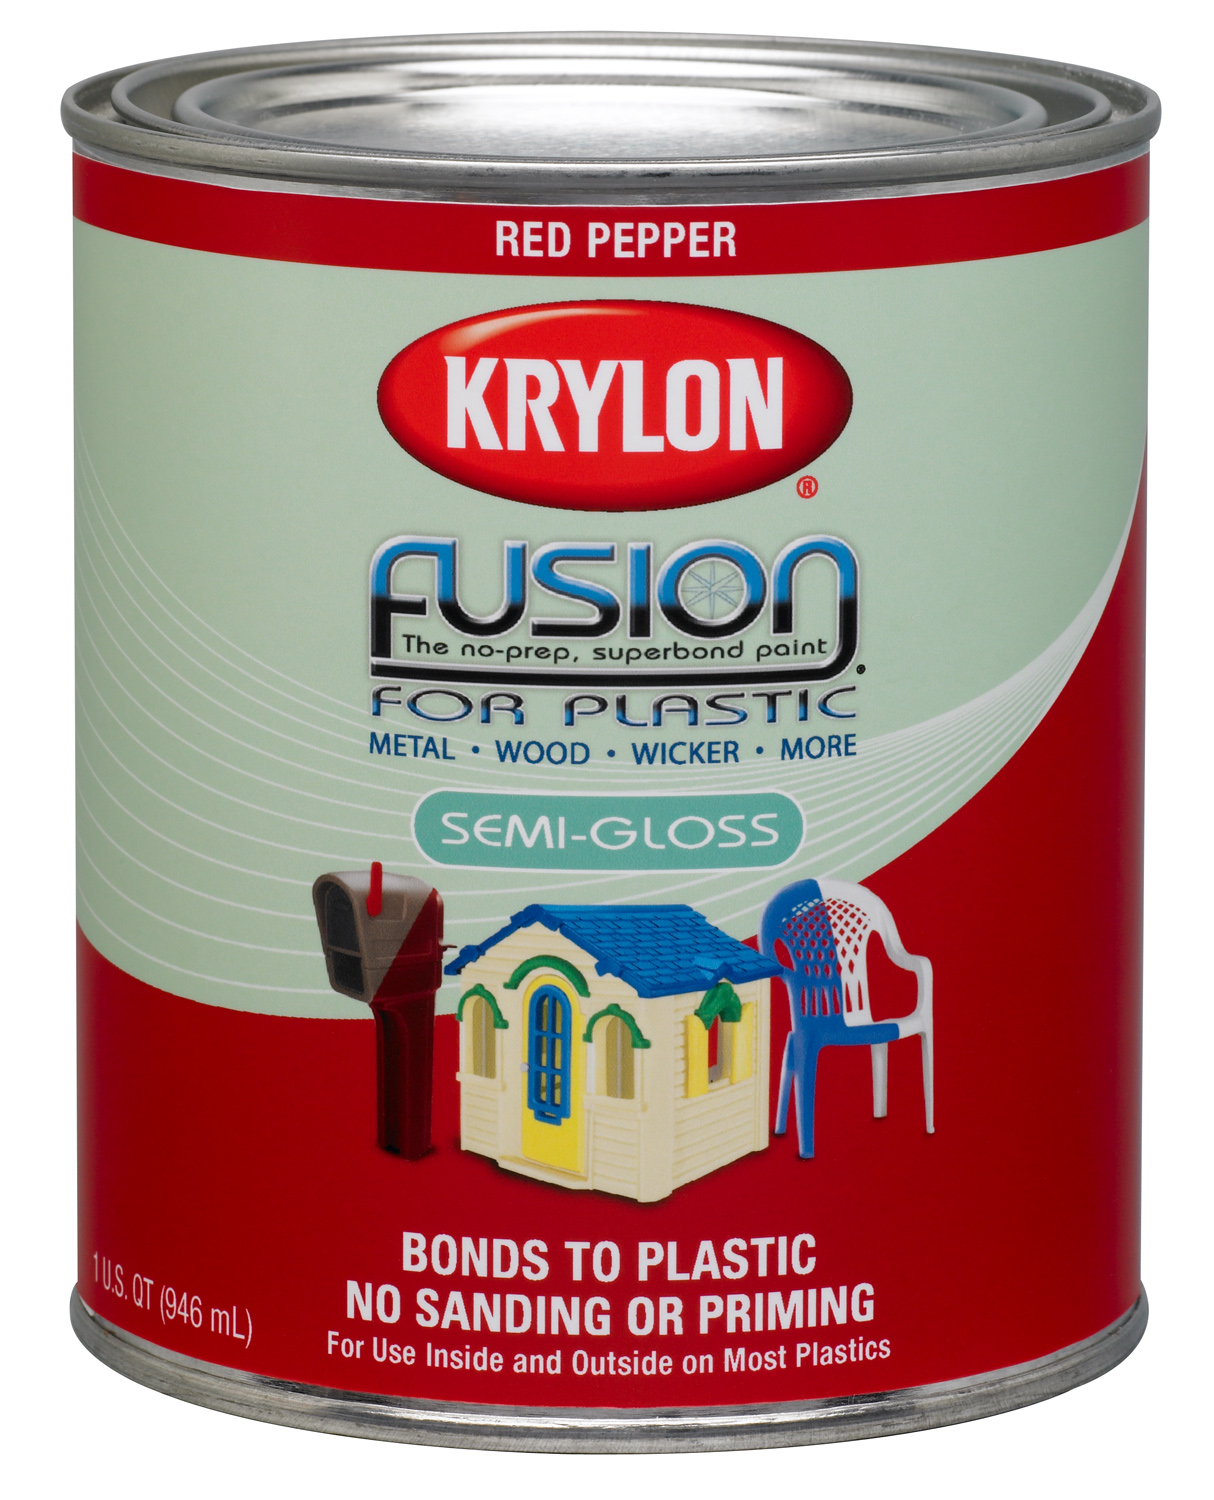 Krylon Fusion For Plastic Brush On Paint